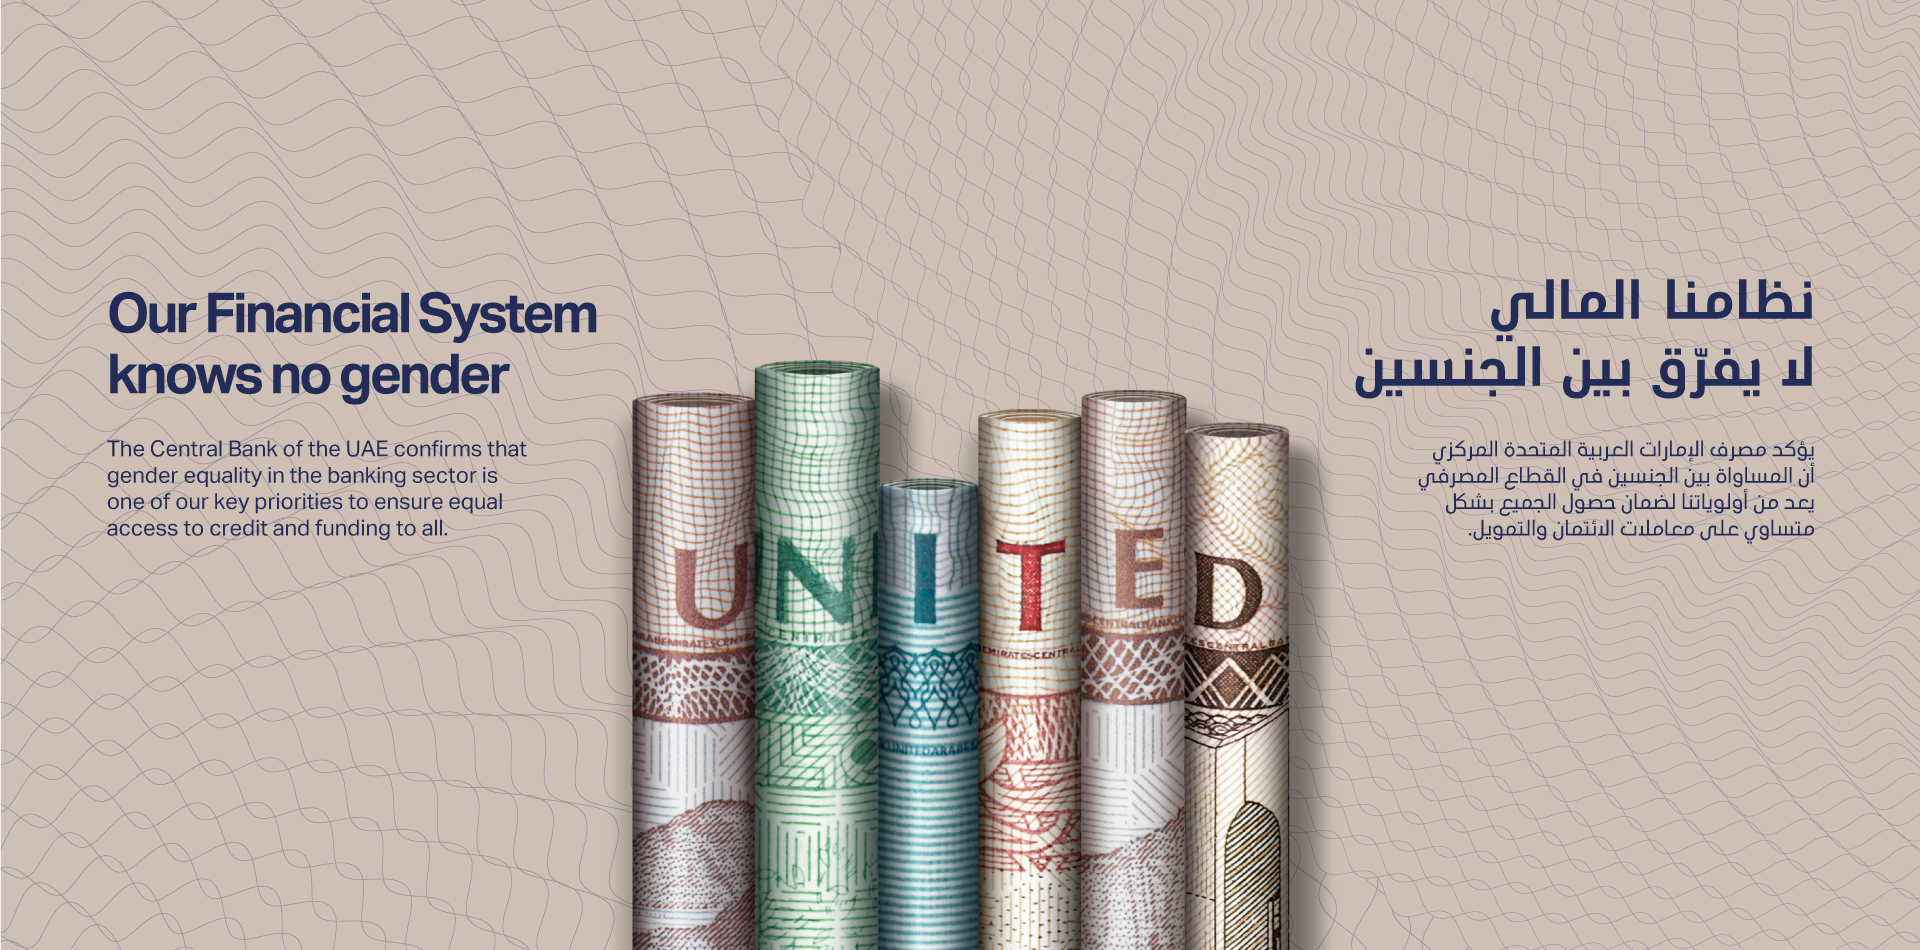 WELCOME TO THE NEW WEBSITE OF THE CENTRAL BANK OF THE UAE - 1